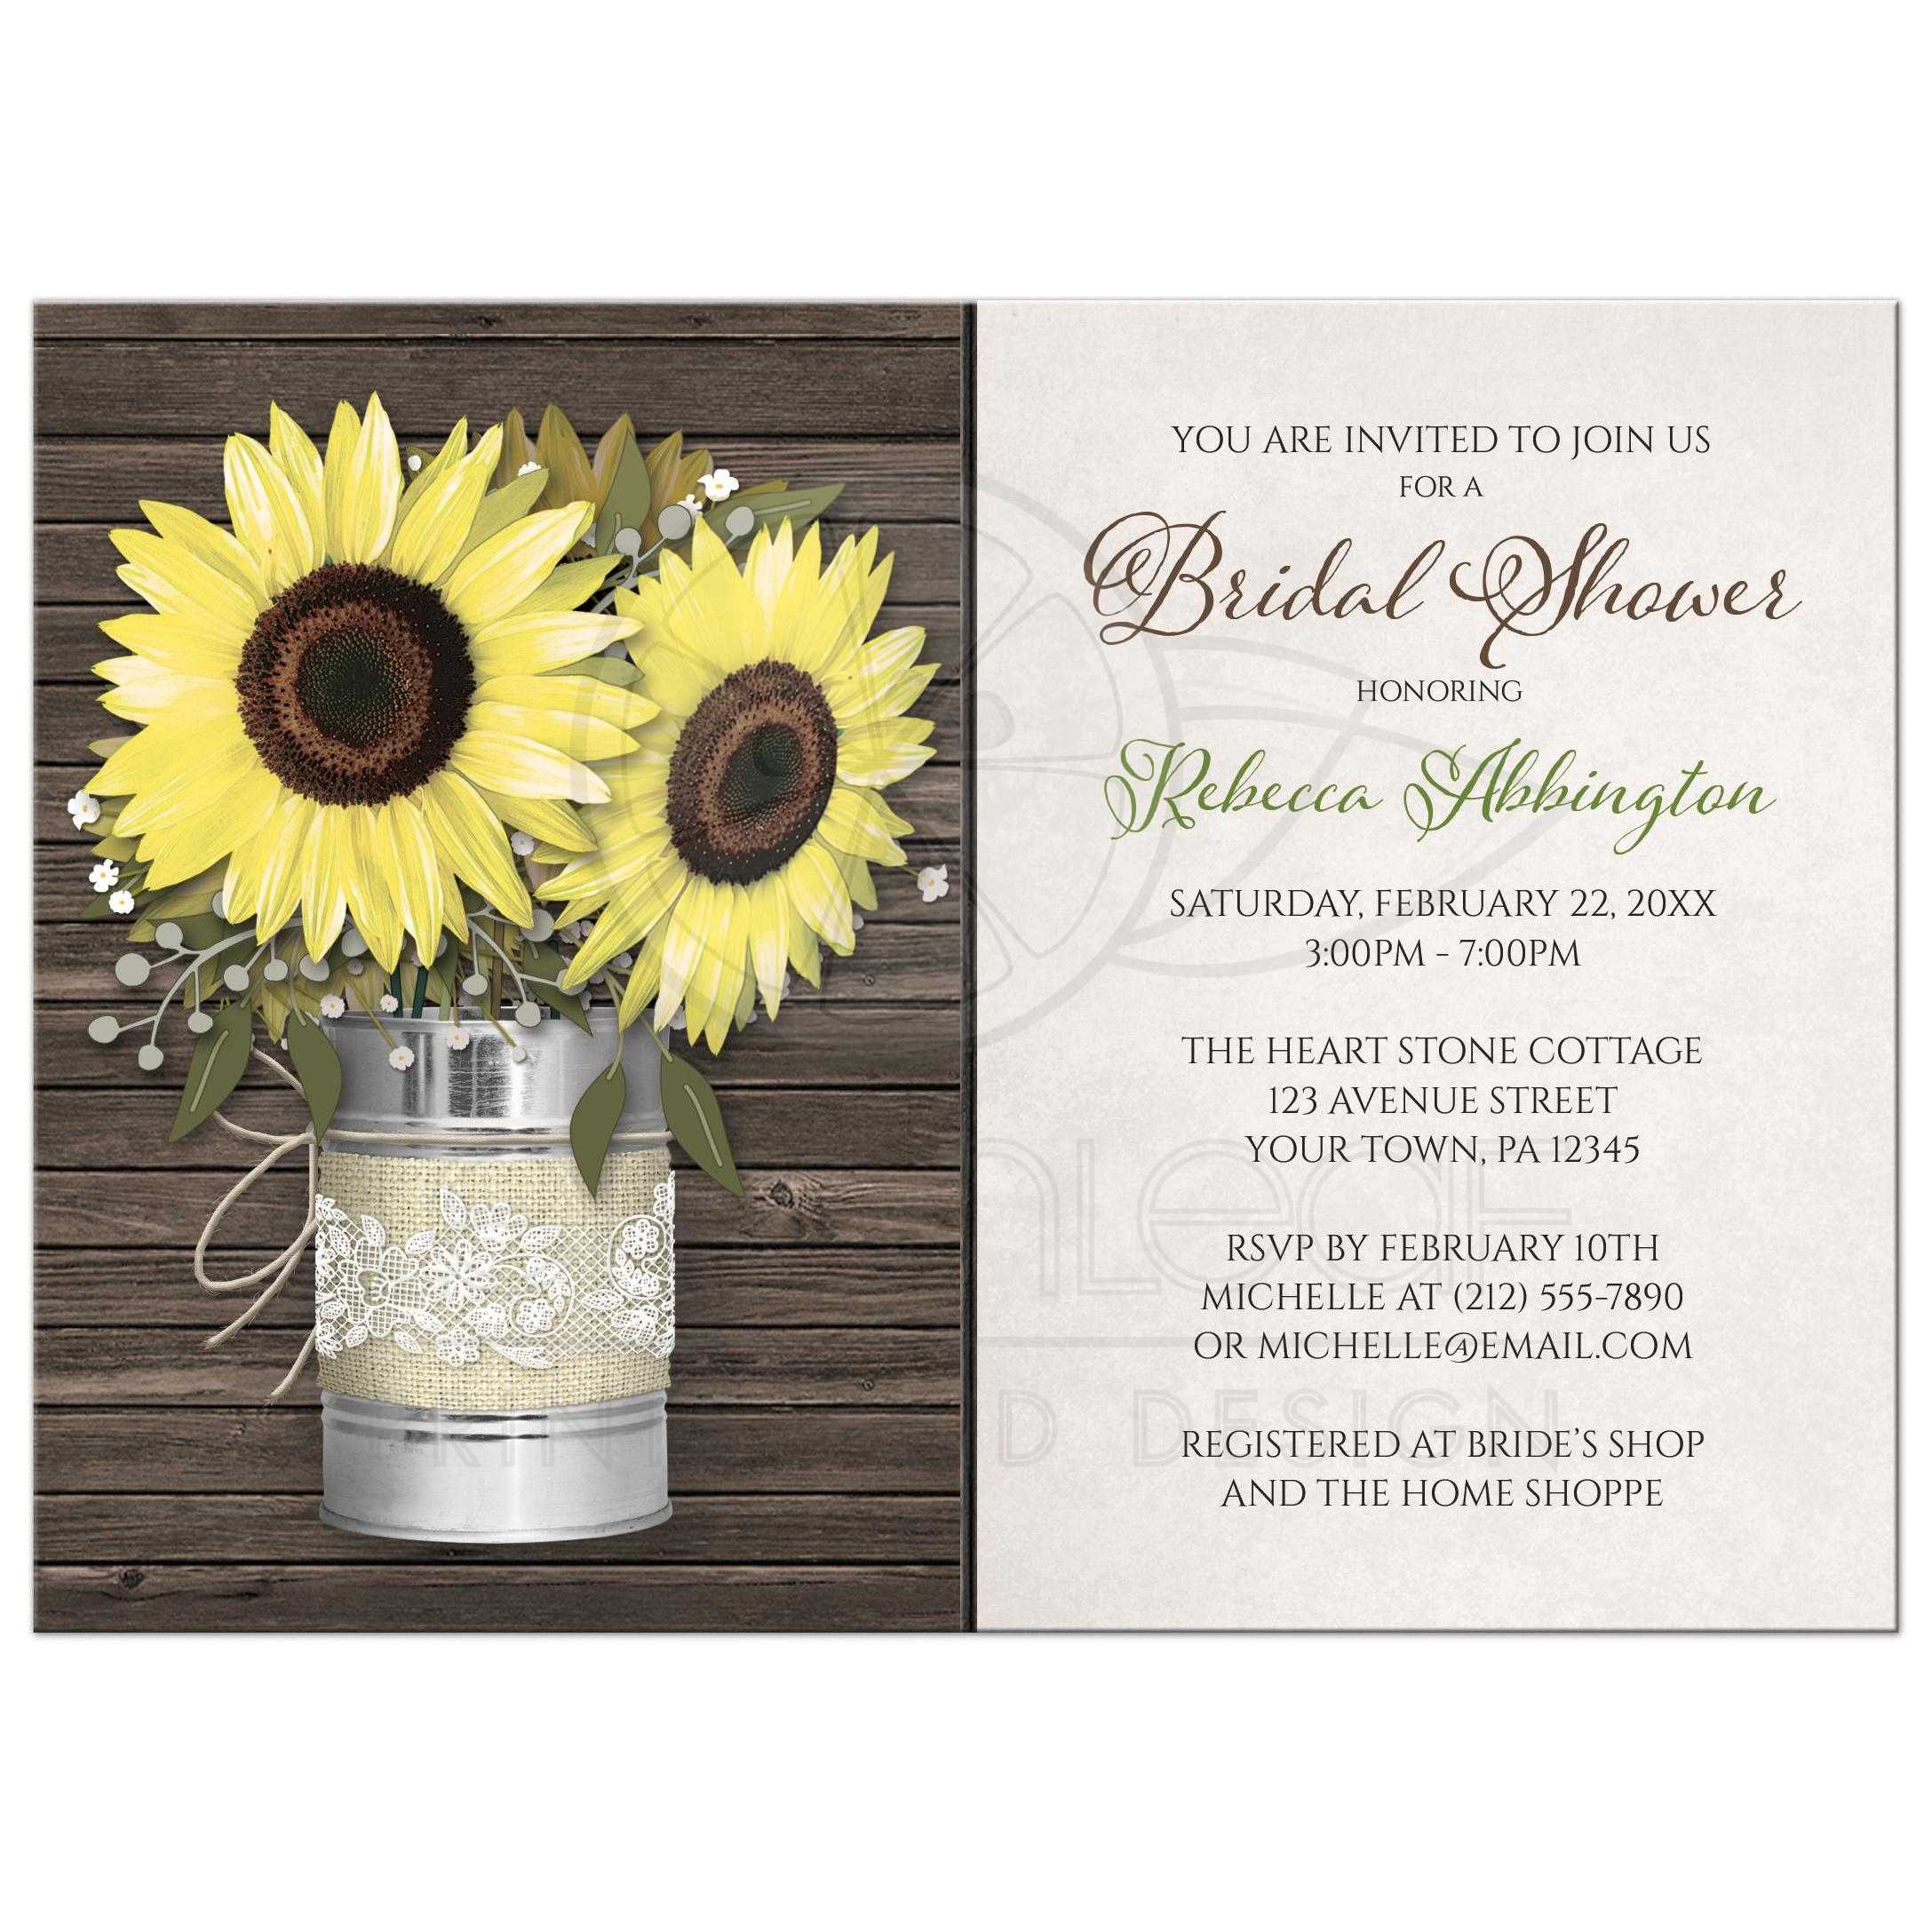 bridal shower invitations rustic burlap u0026 lace tin can sunflower